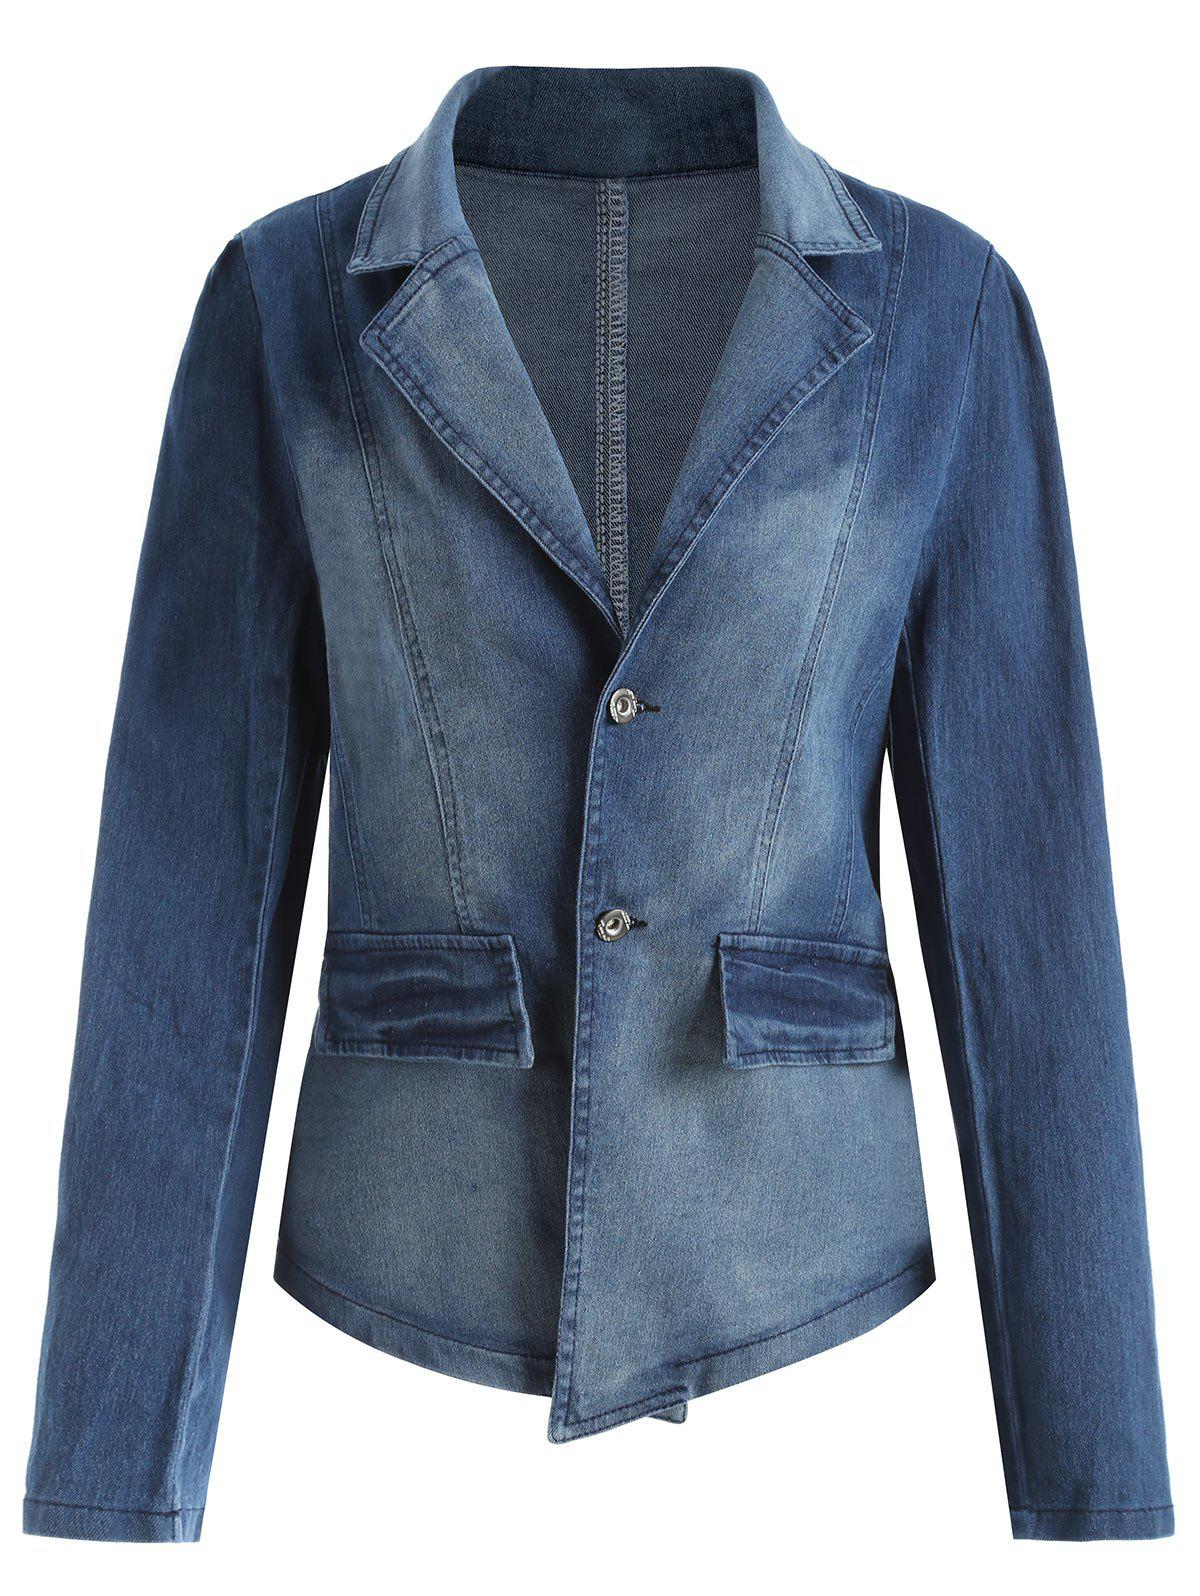 Unique Lapel Plus Size Denim Jacket